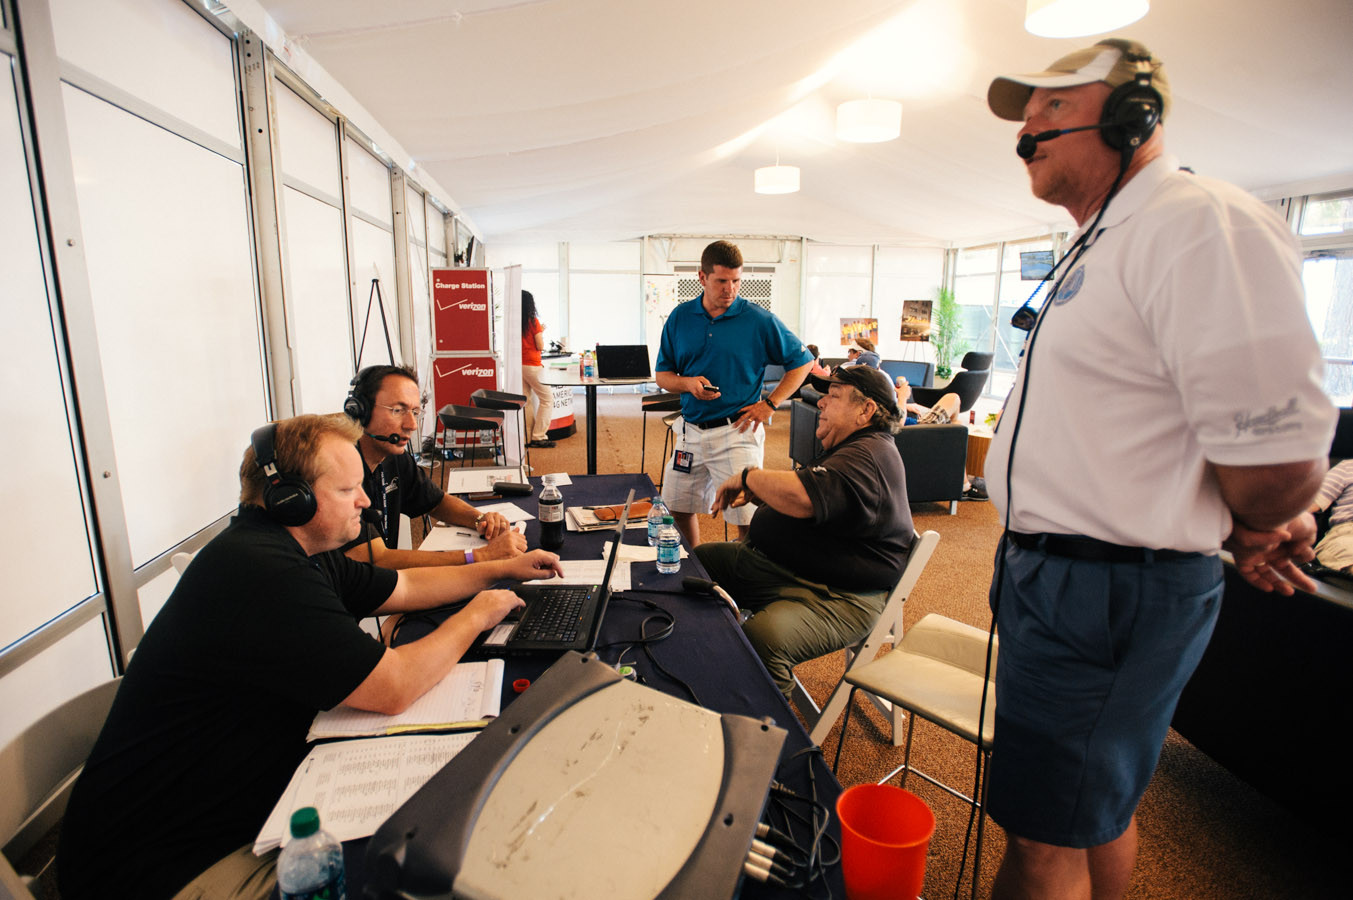 The on-air personalities at 1010xl, Rick Ballou, Frank Frangie, Brent Martineau, David Lamm and Mike Dempsey, broadcast from Club 1791 near the 11th green.